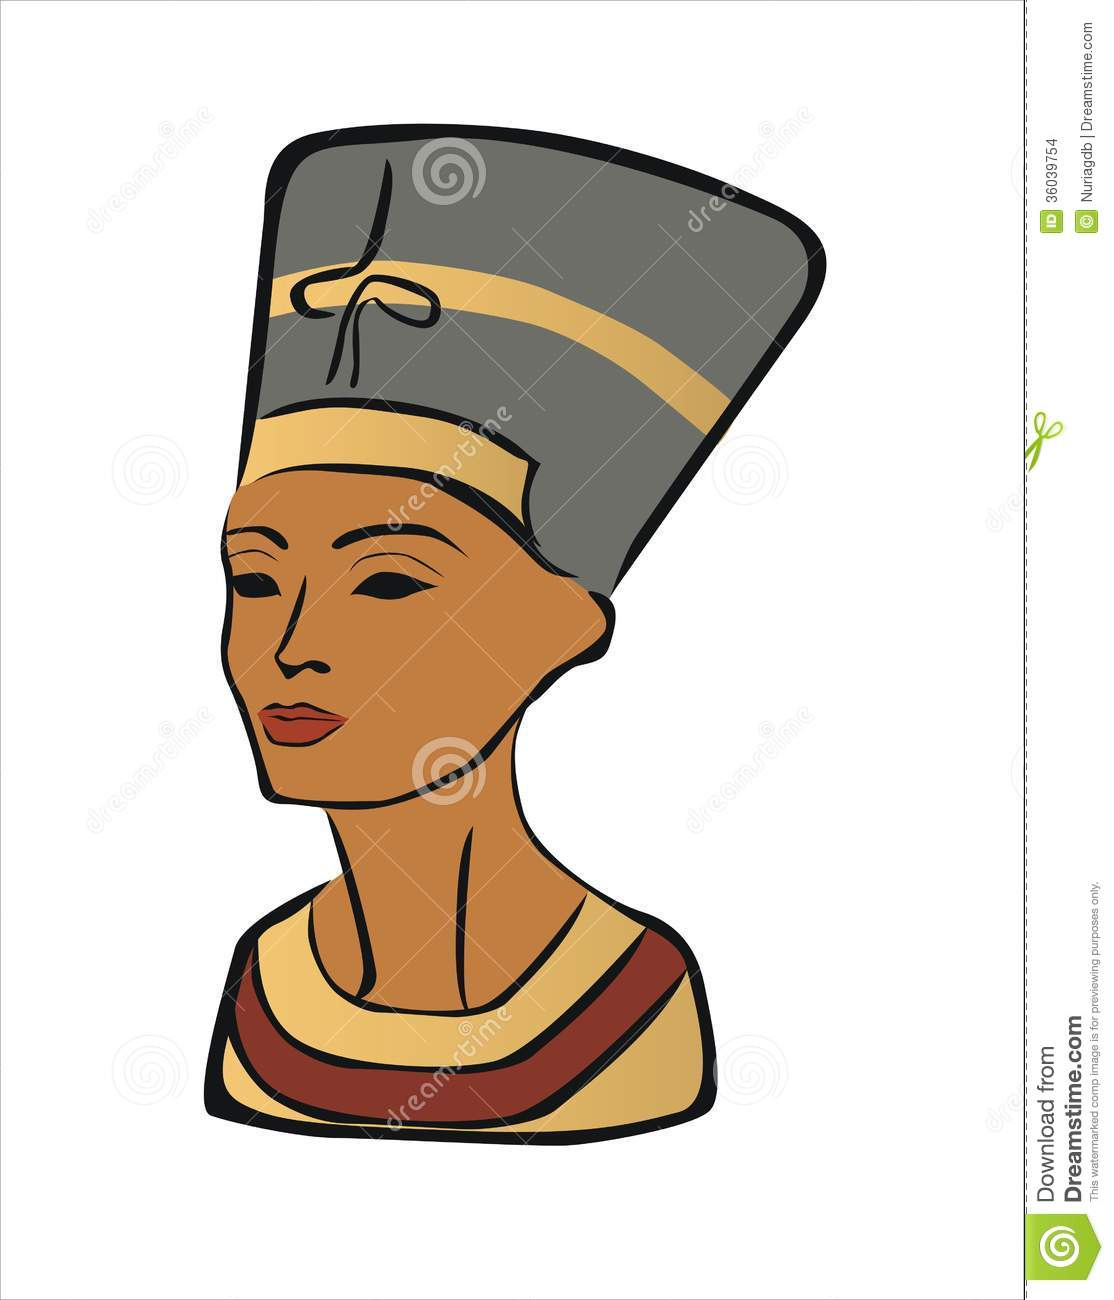 Ancient Egyptian Art Lesson - Drawing a Figure - Artyfactory